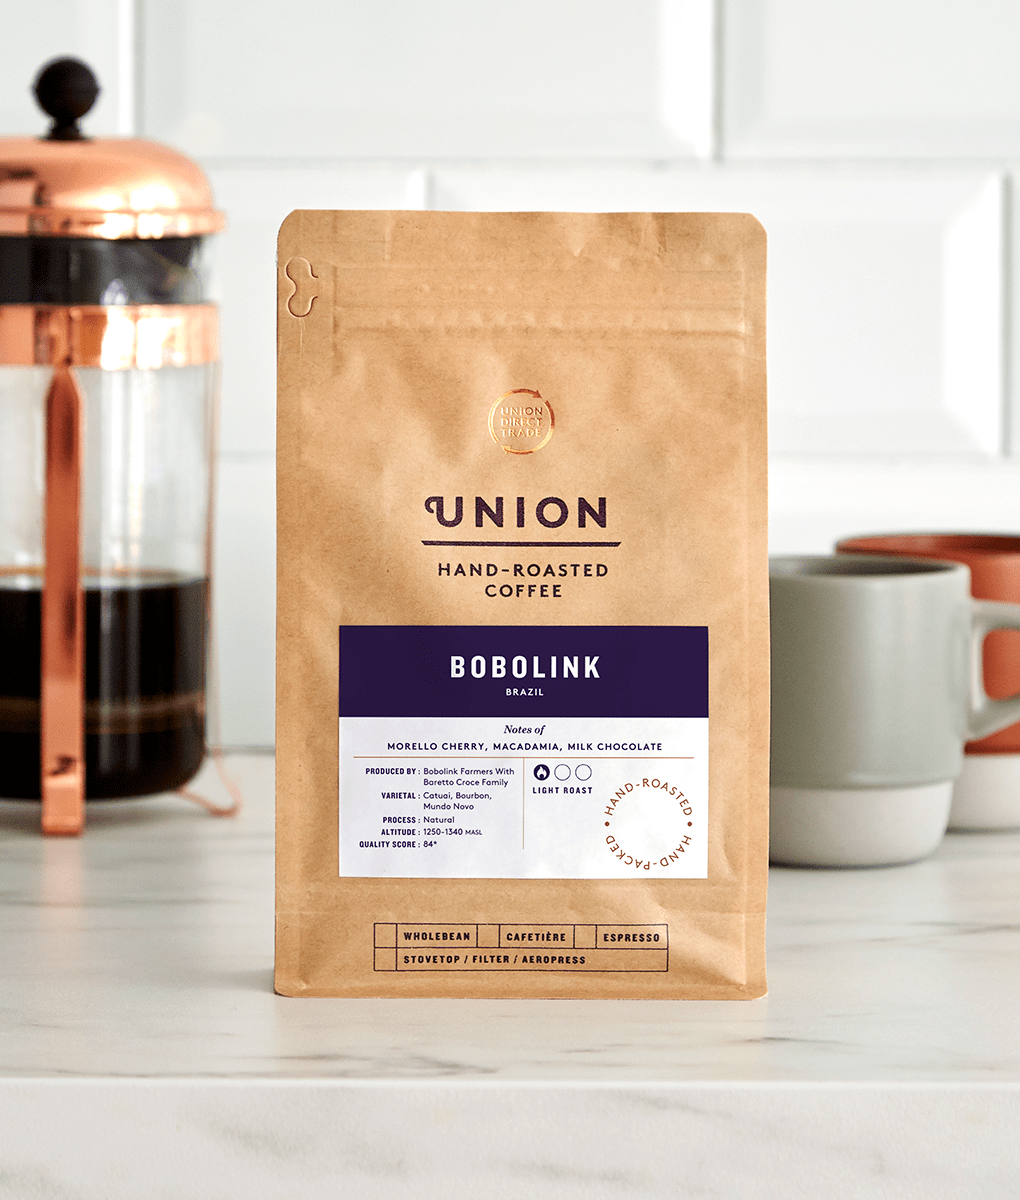 Bobolink Brazil, Union Coffee Bag